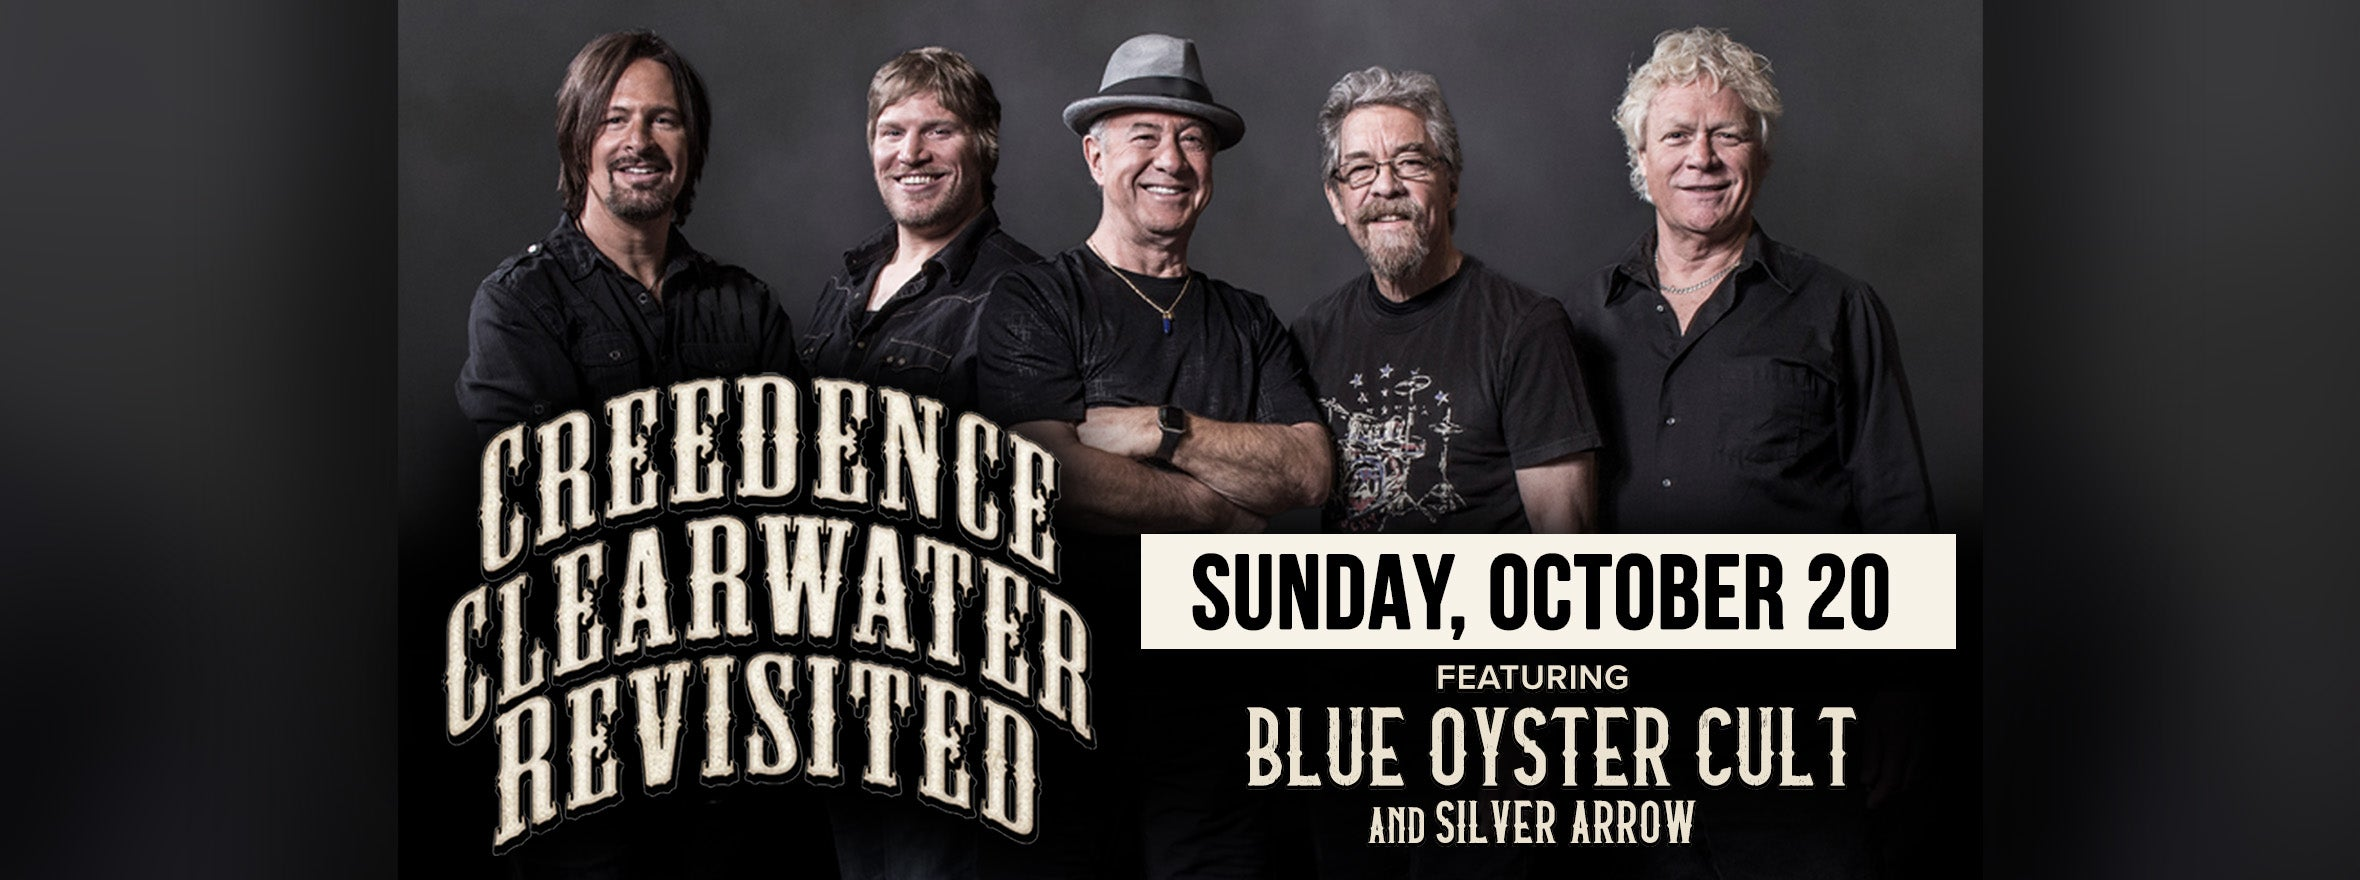 CREEDENCE CLEARWATER REVISITED TO HIT UTICA